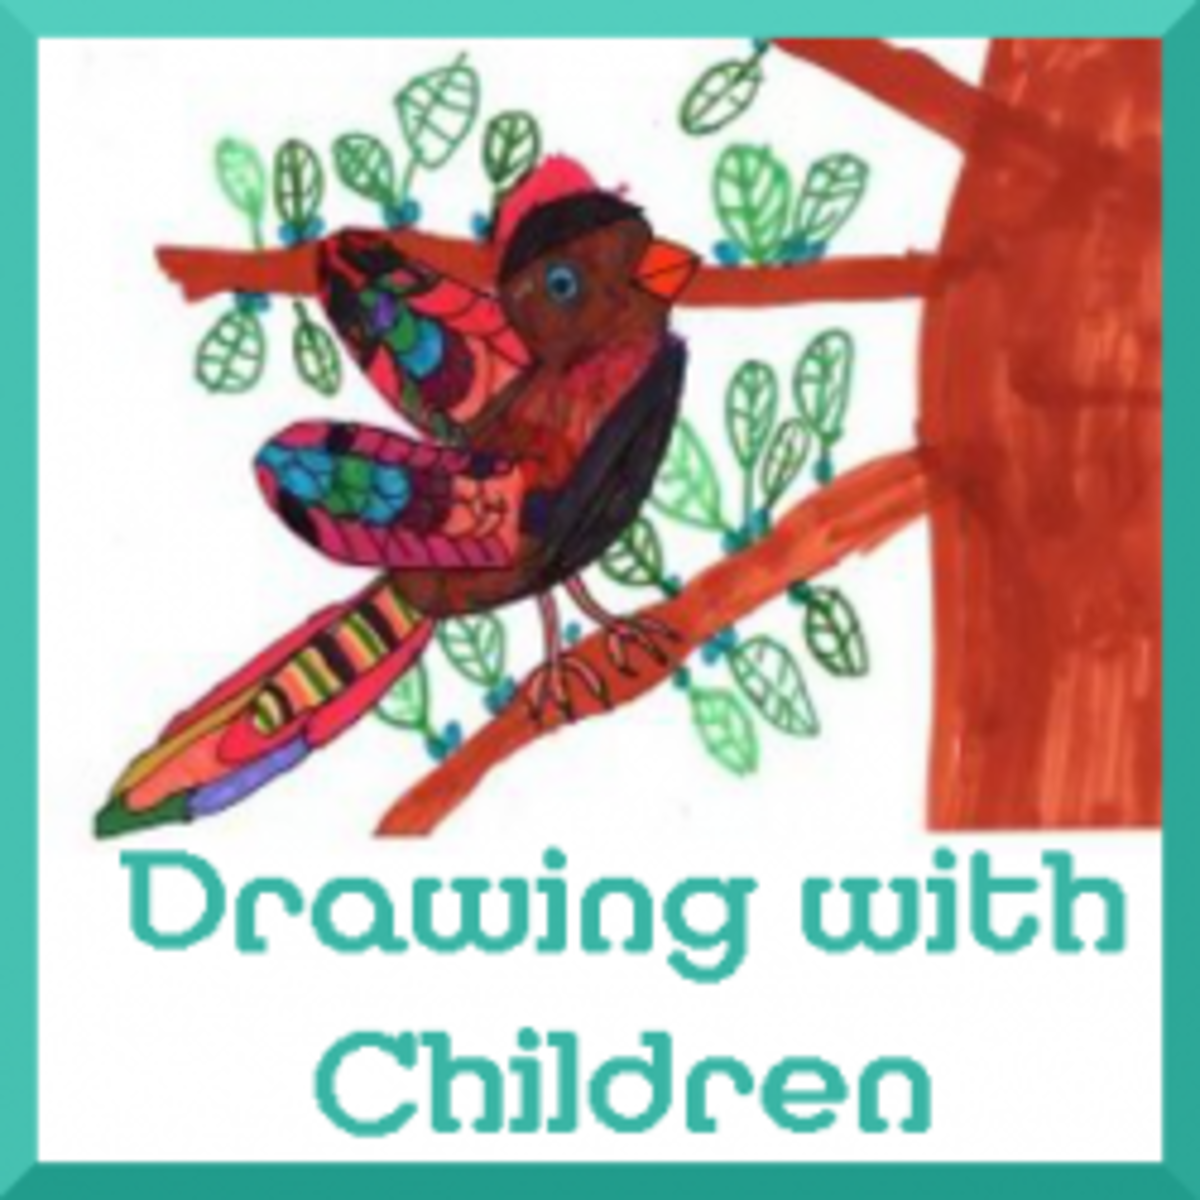 Using Drawing with Children by Mona Brookes